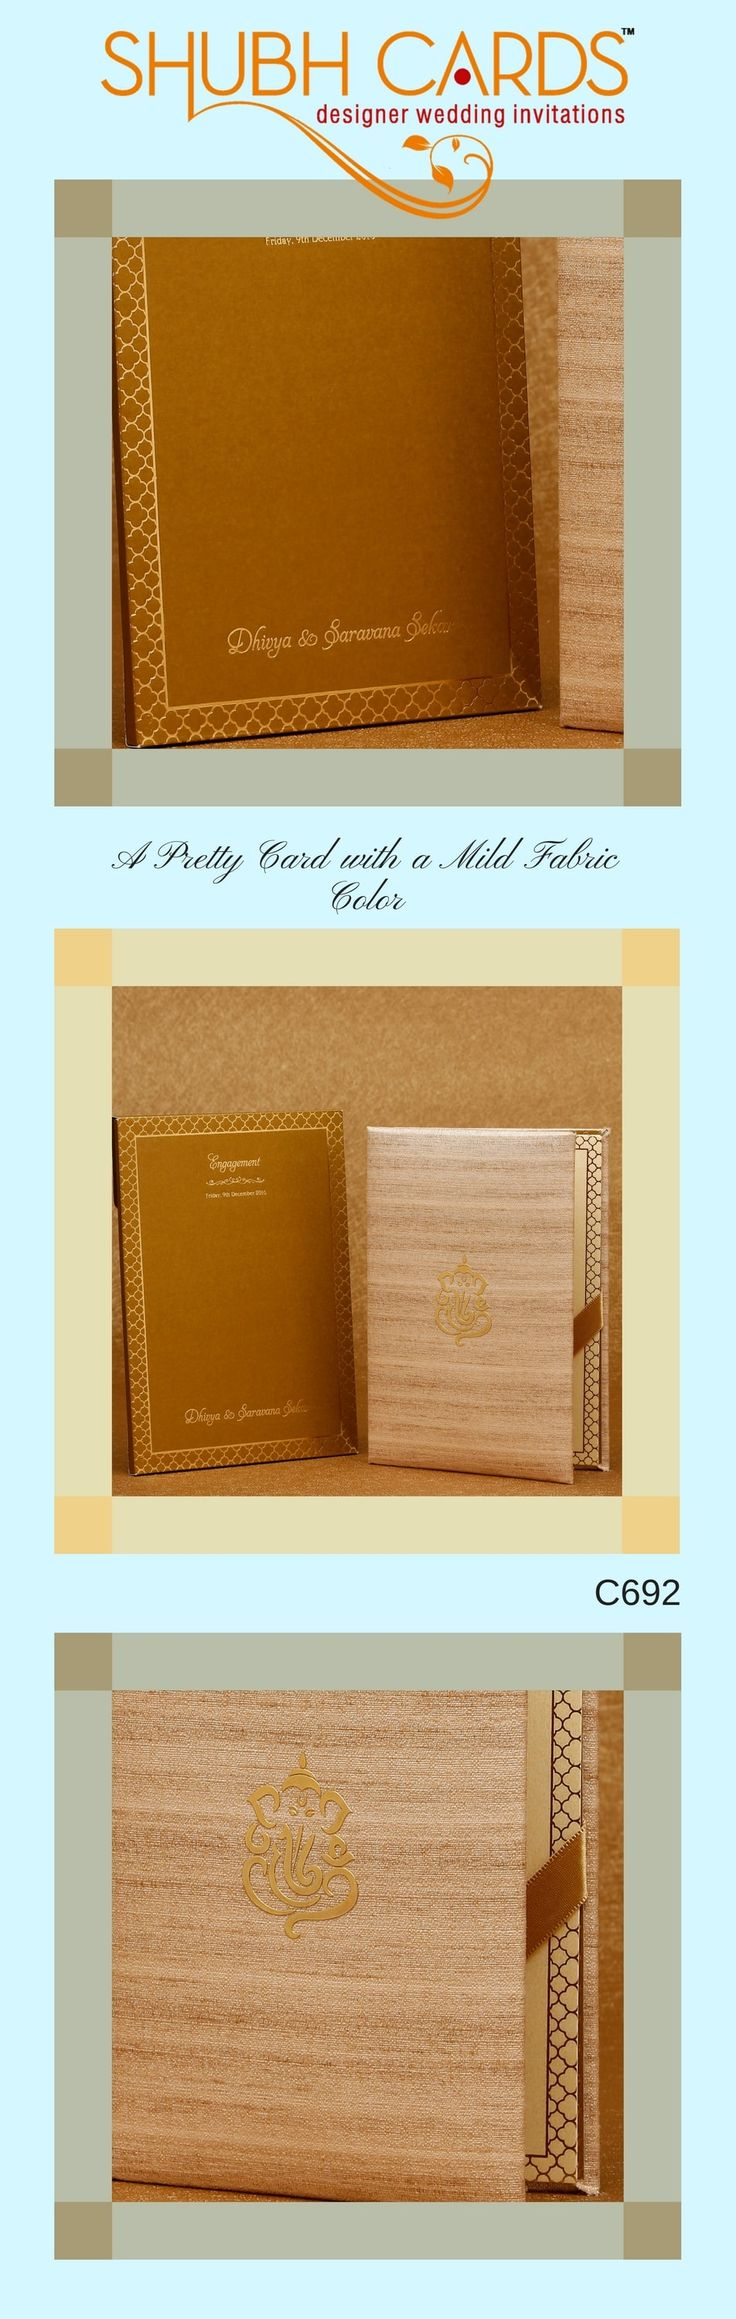 A contrast coloured #WeddingCard from #ShubhCards . The #invite made of cream raw silk has a central Ganesha in MDF. The insert inside has an attractive border with honey comb design in gold.  The cover in golden brown color, with a border made of honey comb pattern in gold looks elegant. The name of the bride and the groom printed in gold atop the #weddingcard looks neat.  #WeddingInvitation #MarriageInvitation #DesignerWeddingInvites #DesignerWeddingCards #MarriageCards #ShubhCards